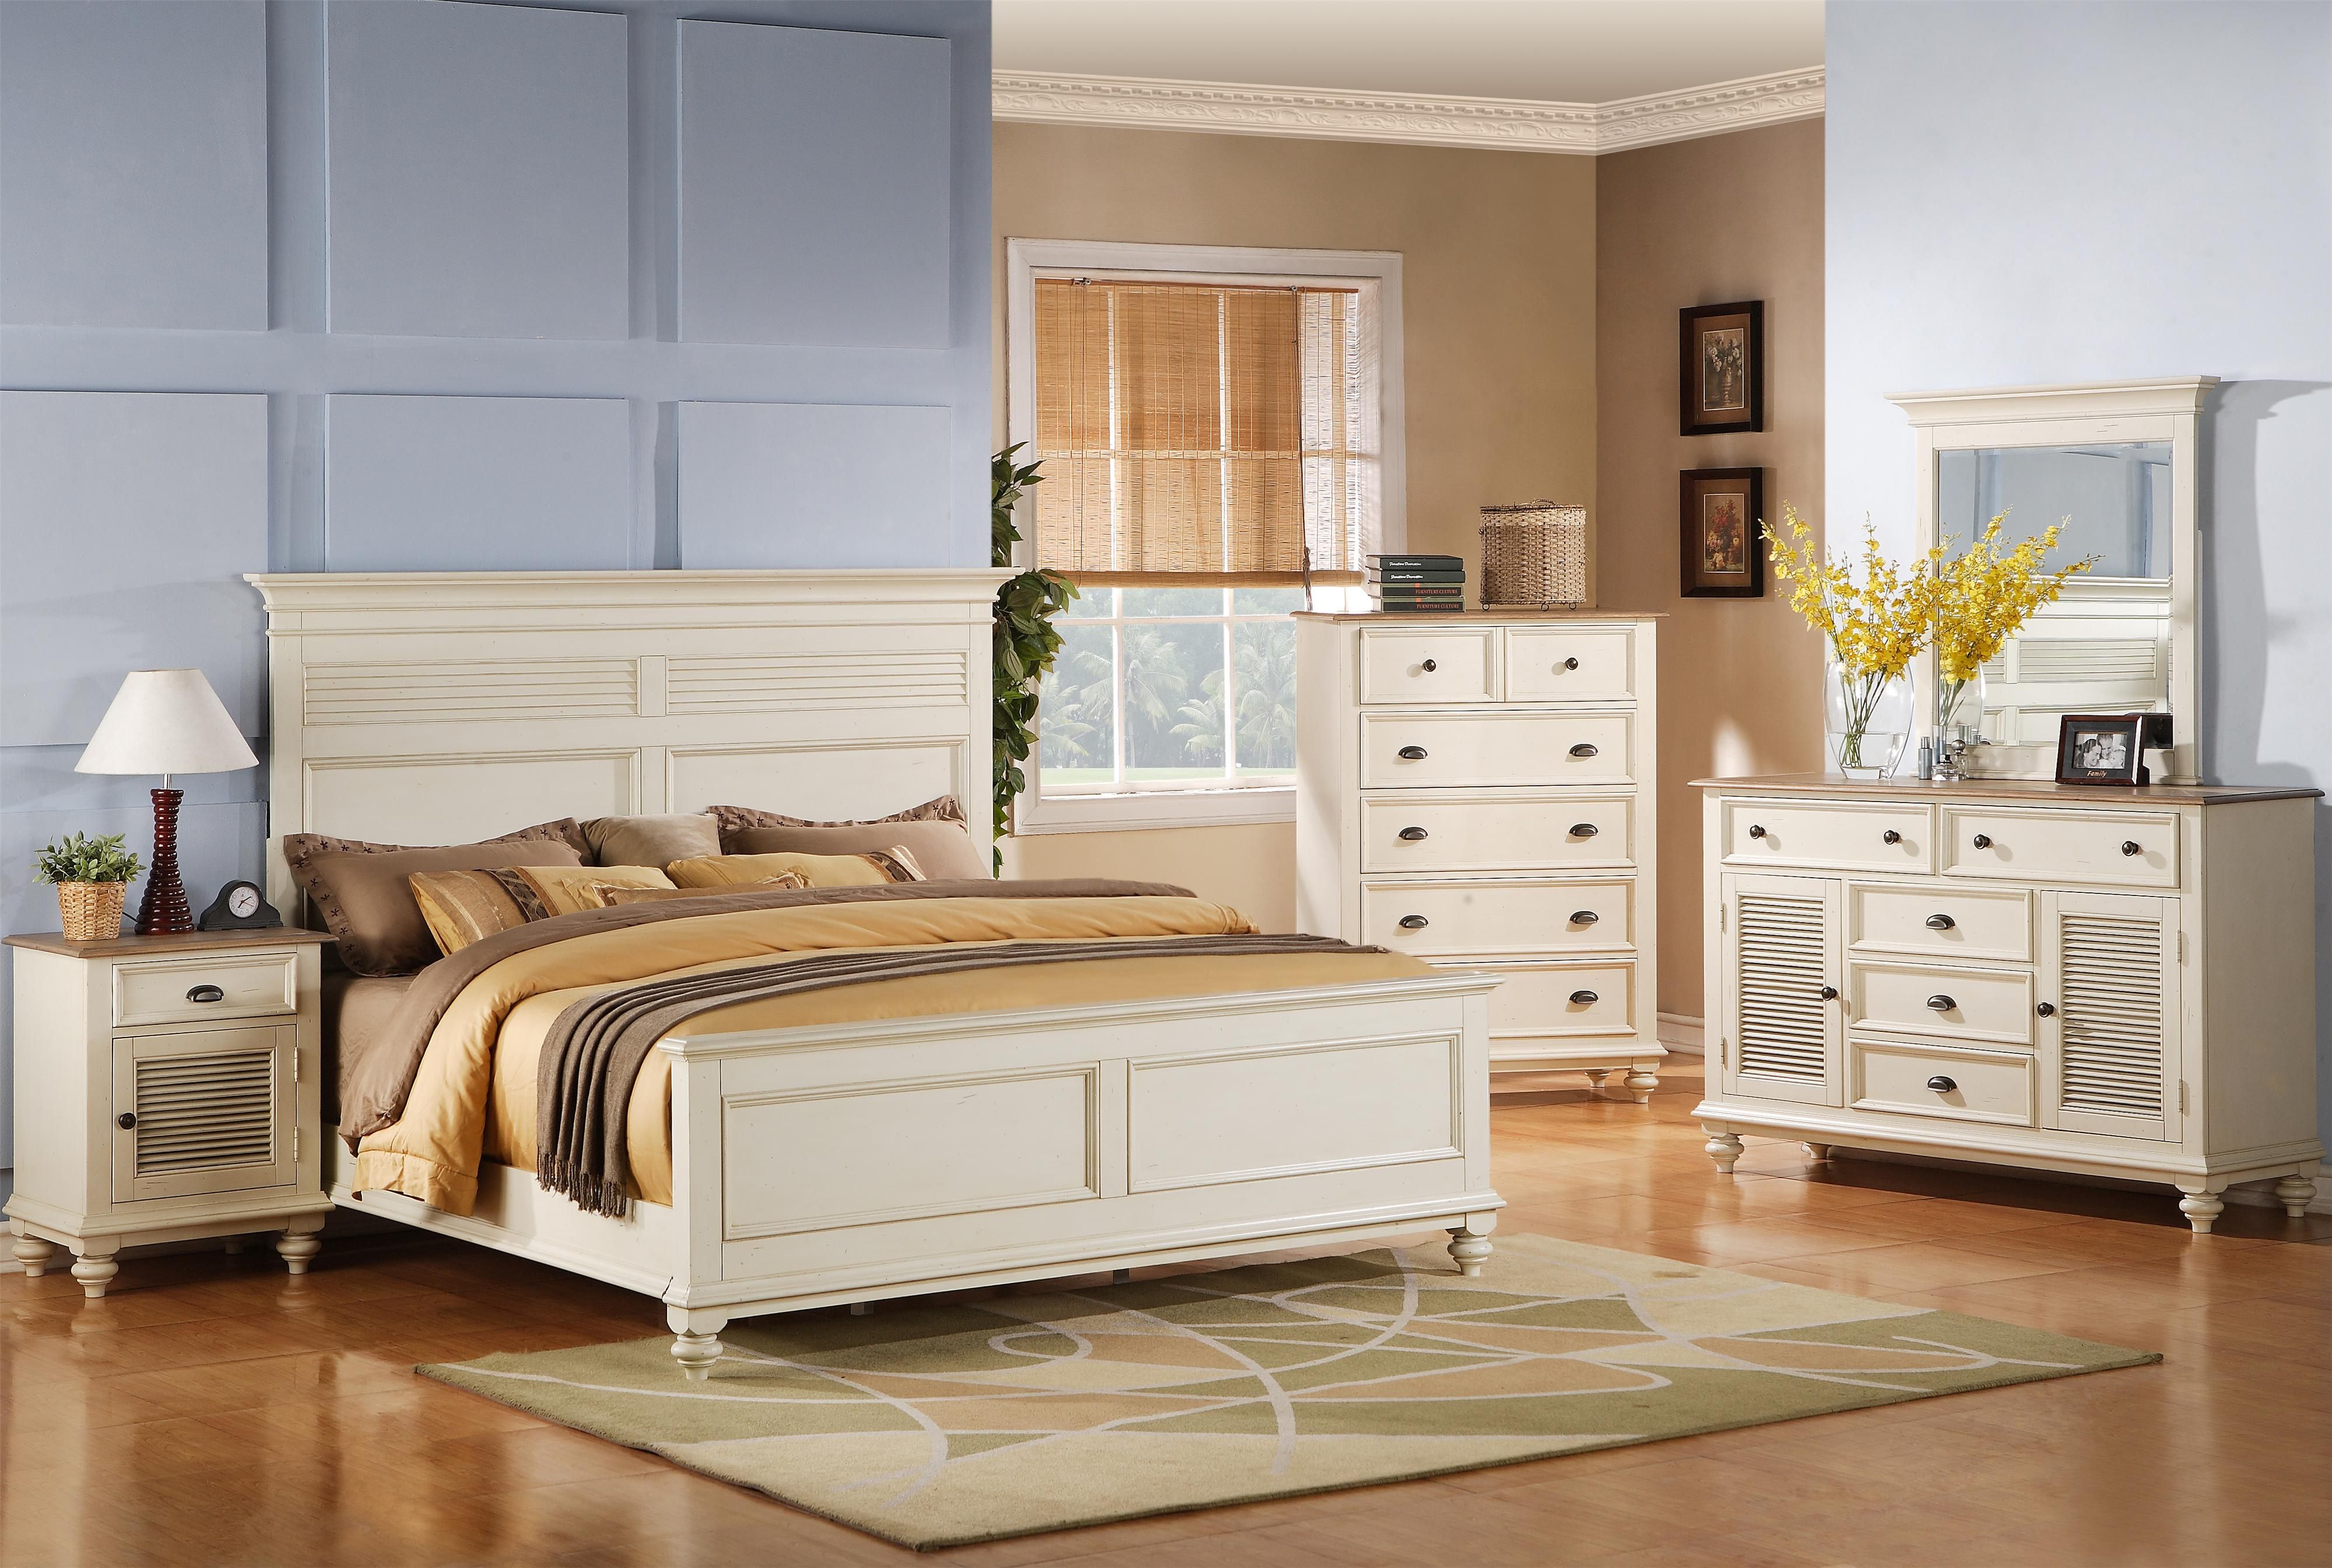 Riverside Furniture Coventry Two Tone King Bedroom Group - Item Number: 32500 K Bedroom Group 17